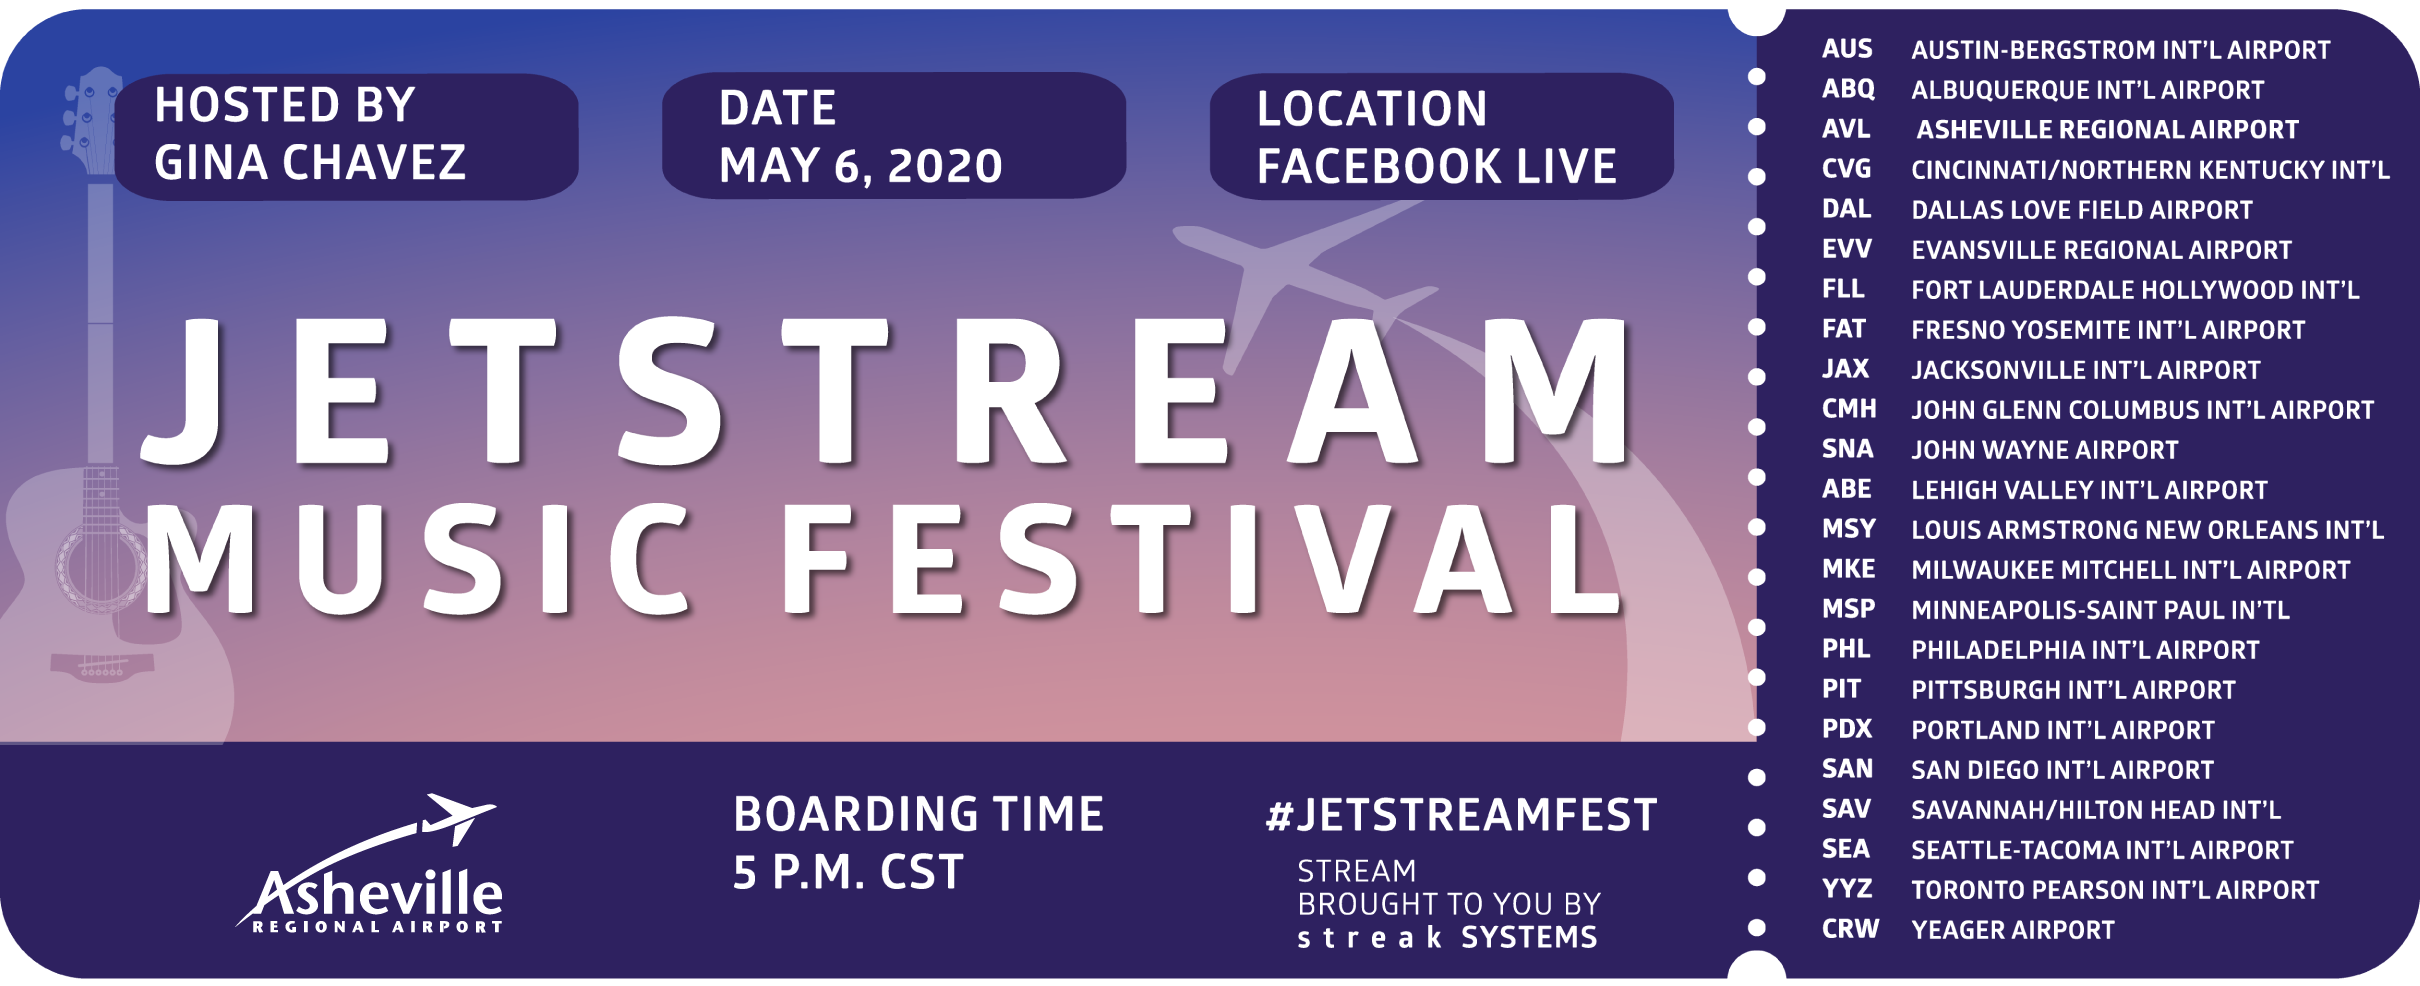 JetStream Music Festival